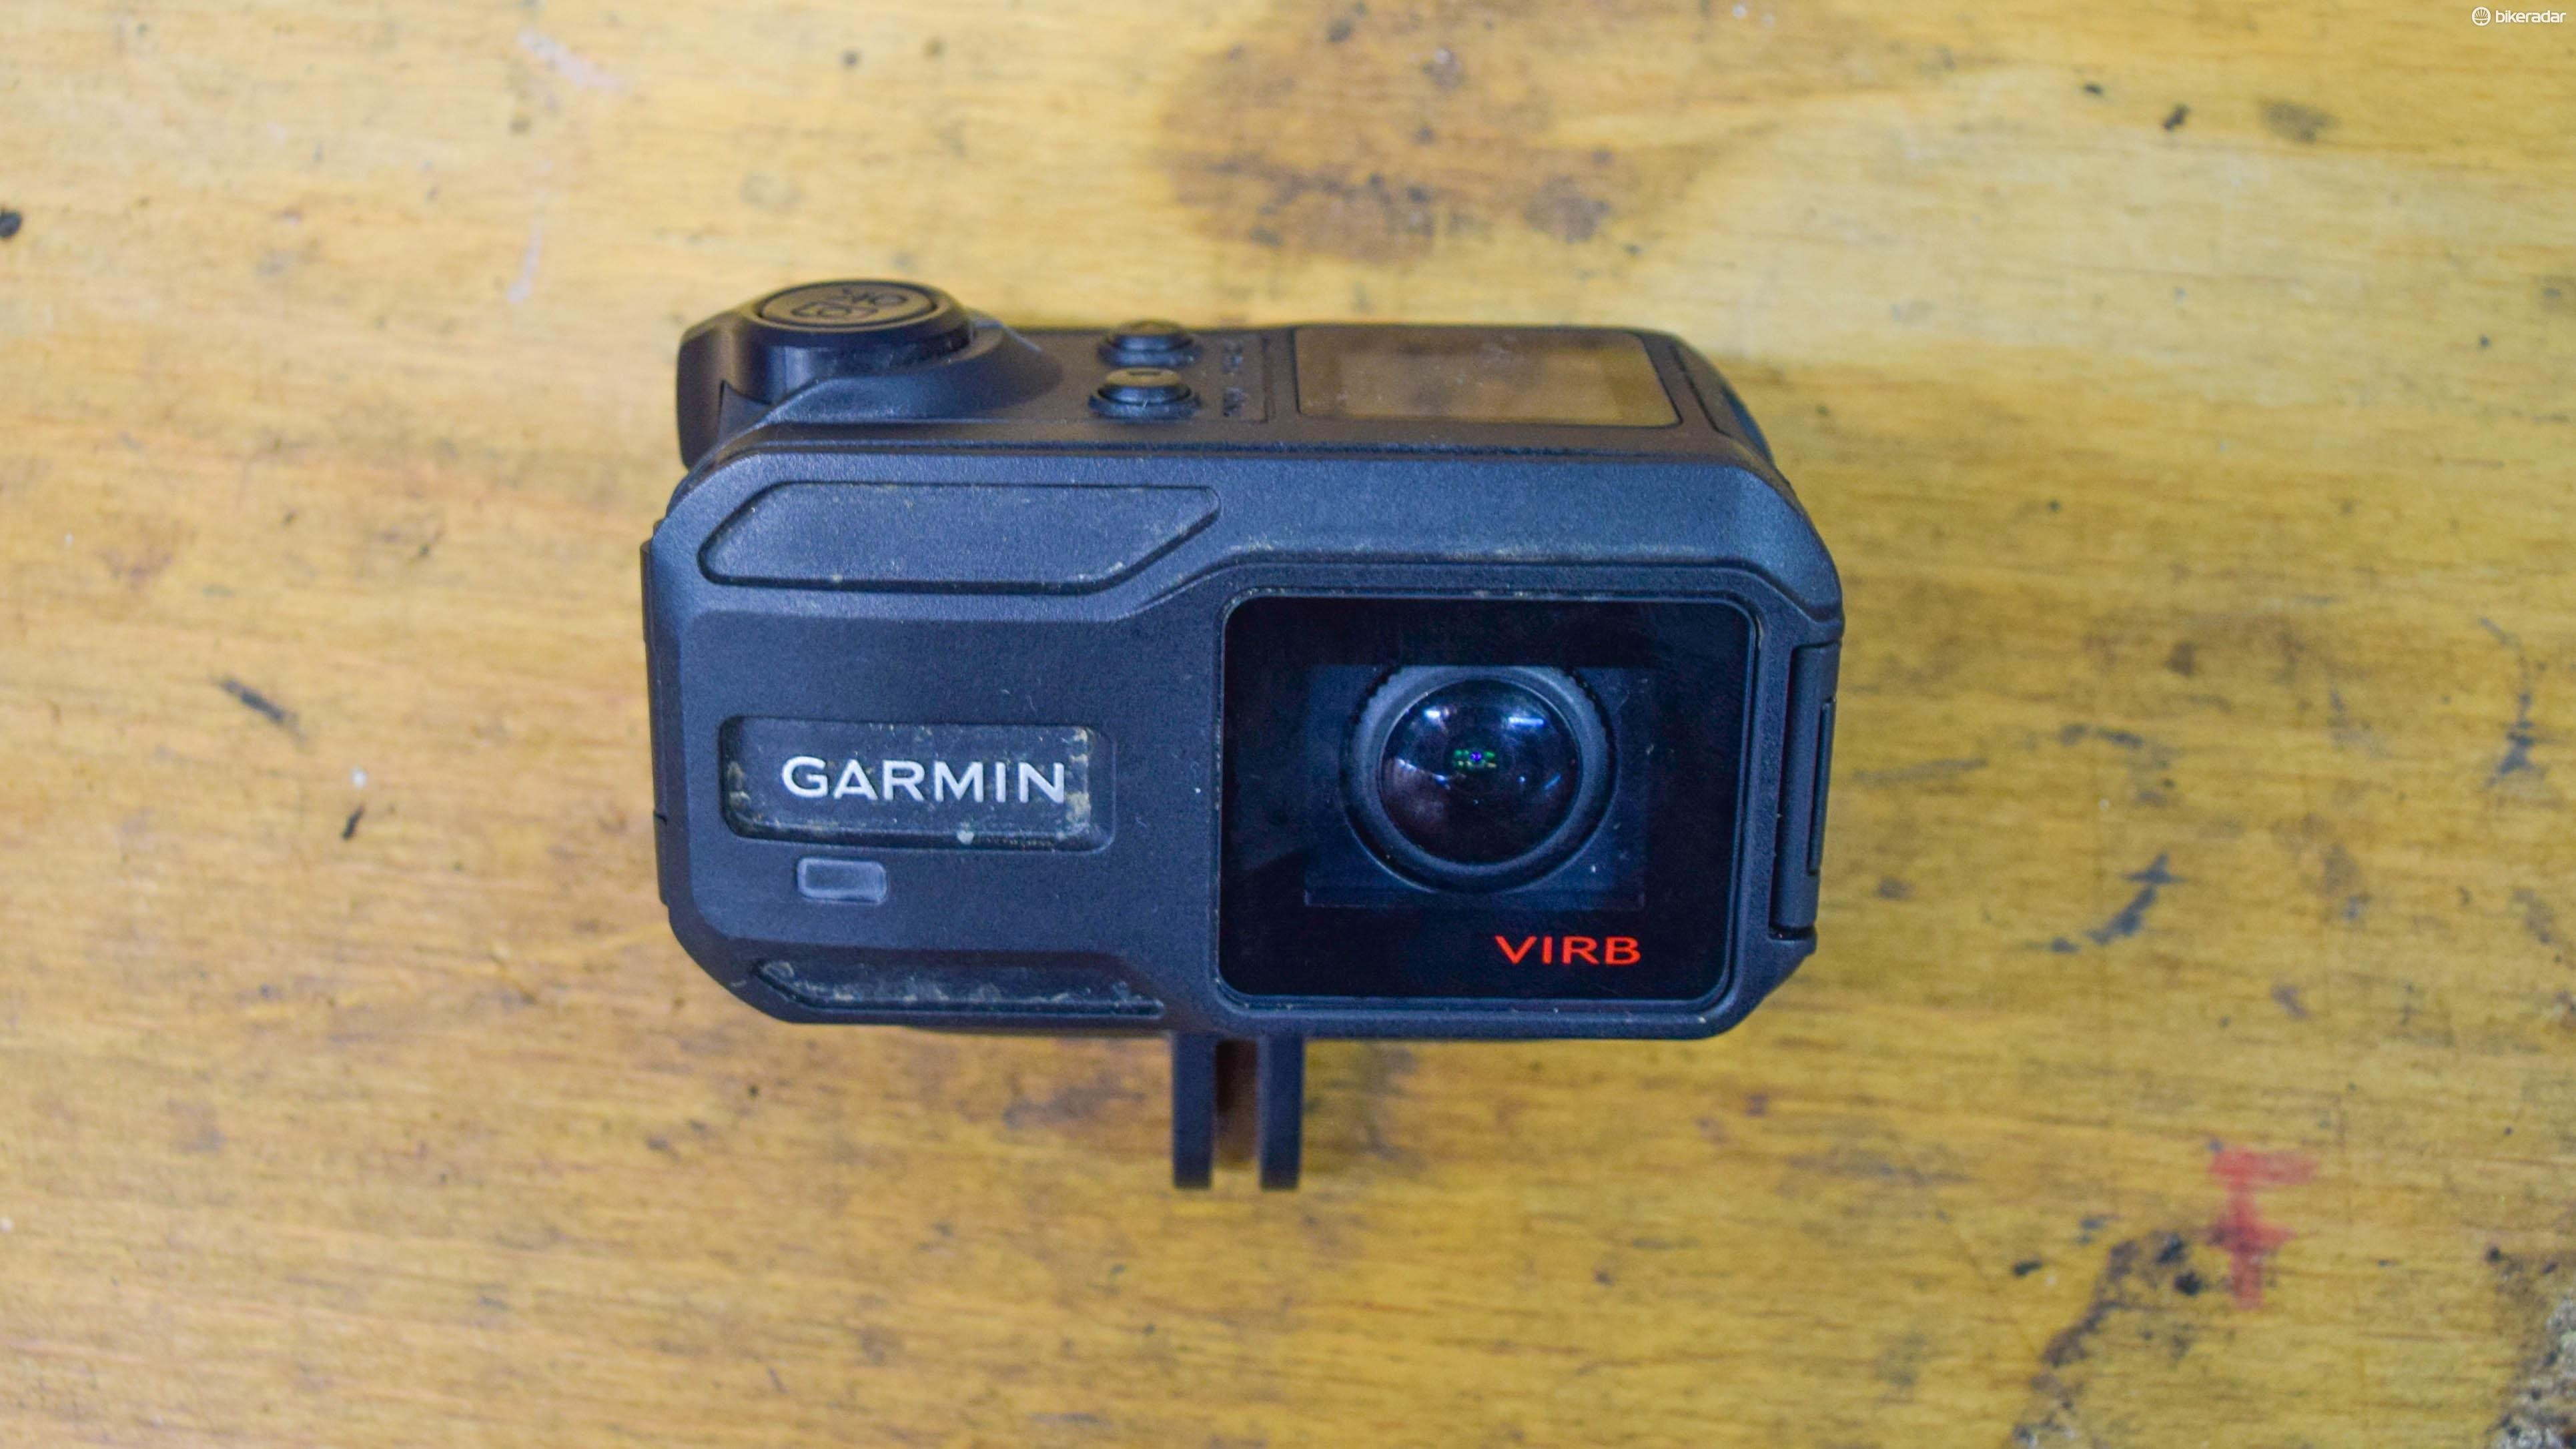 The Garmin ViRB is a chunky action camera and you can tell in this photo we've put it through some abuse